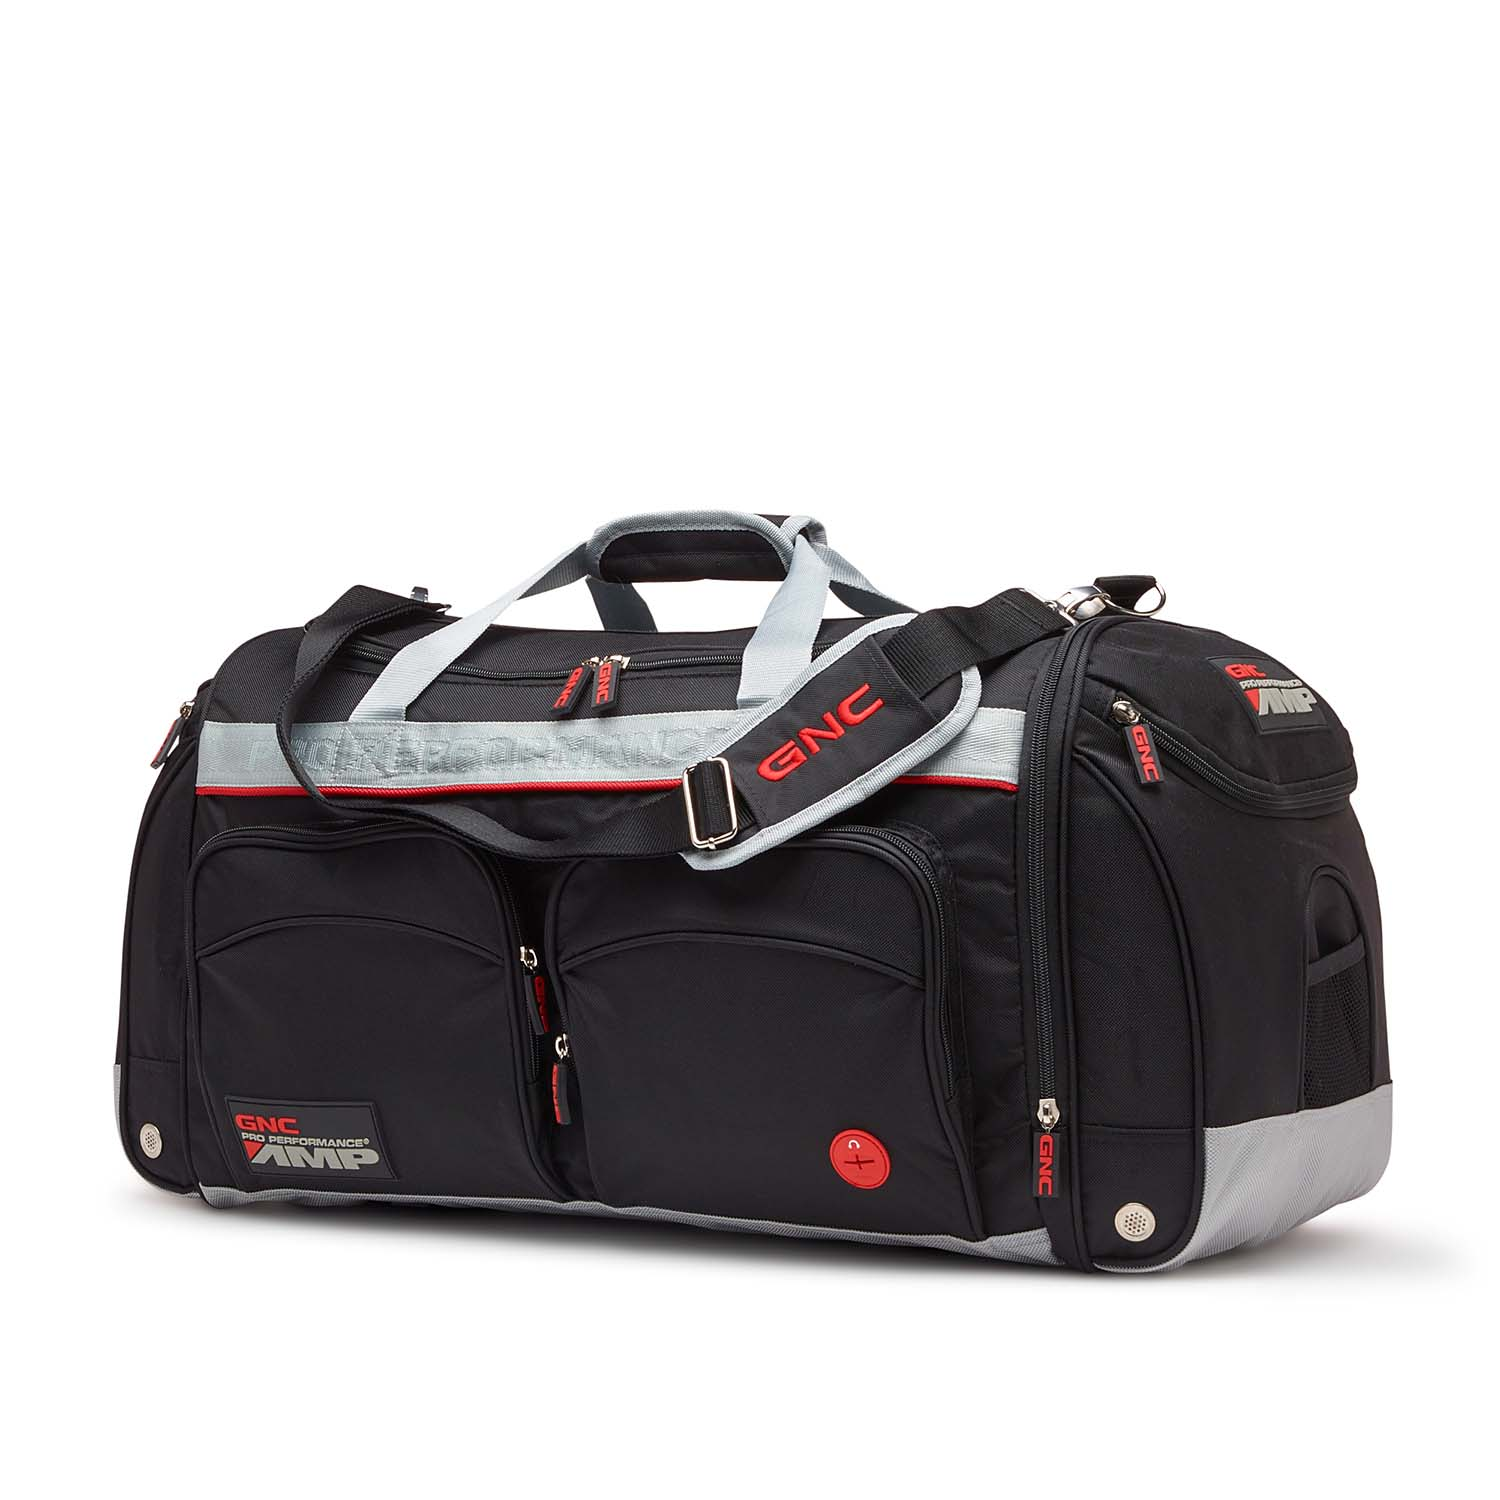 56d33094c5af AMP Ultra Gym Bag - Holds Shoes